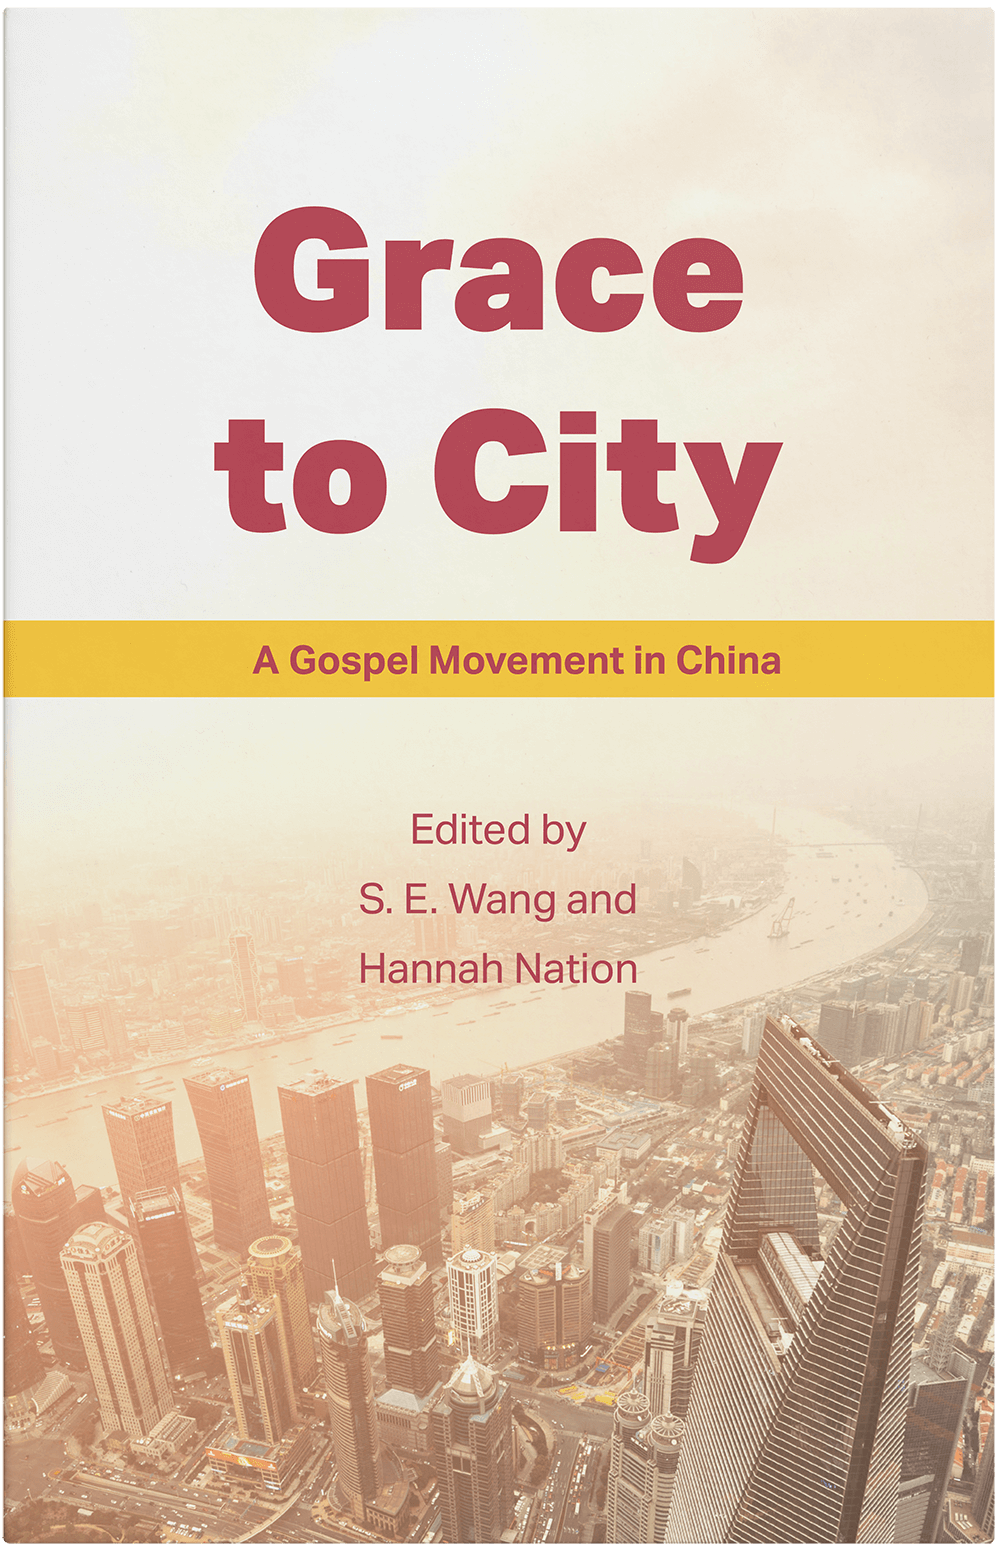 Grace to City, A Gospel Movement in China, Edited by S.E. Wang and Hannah Nation. An eBook by  China Partnership.